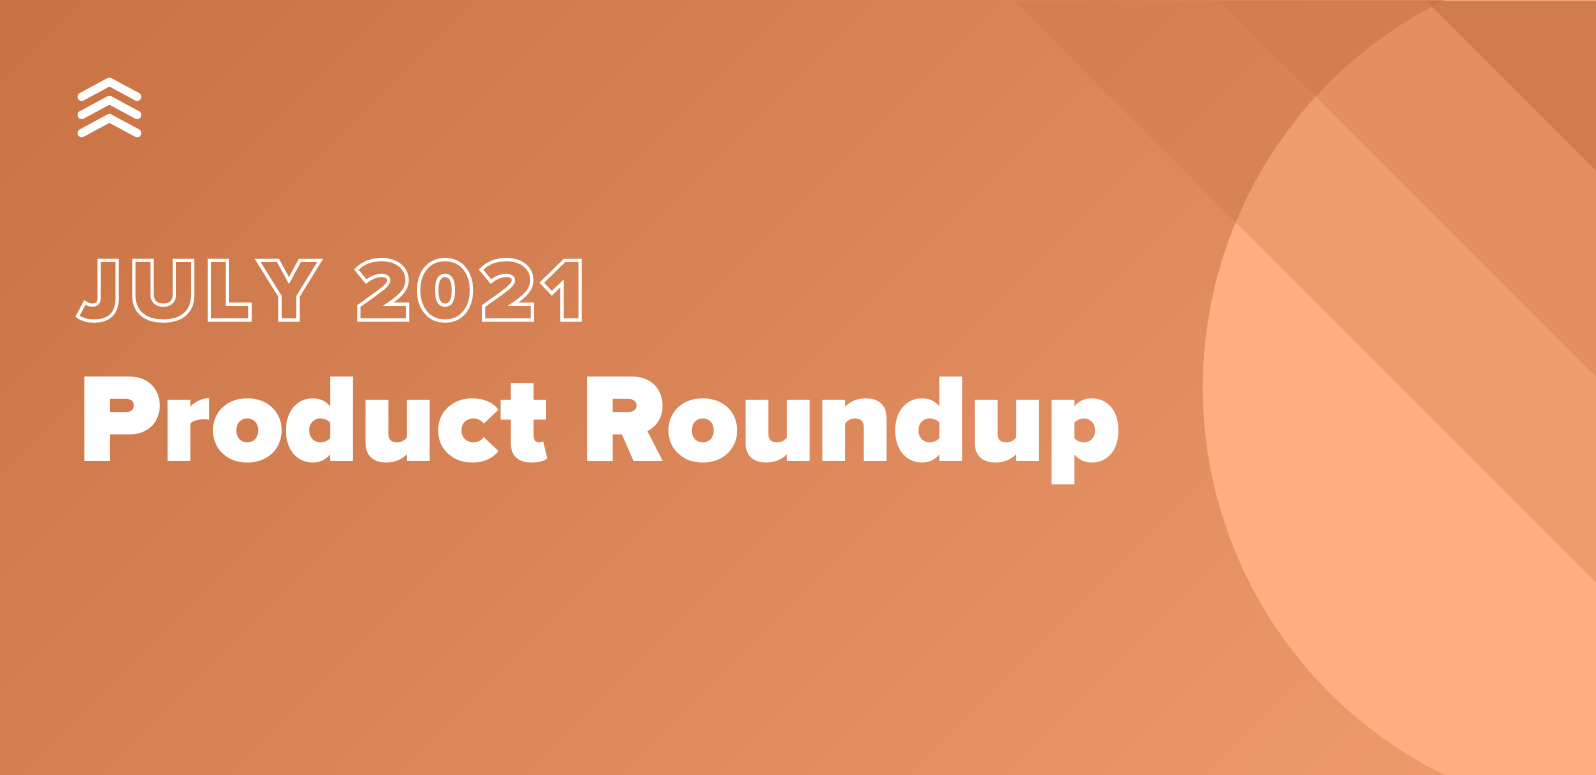 July 2021 Product Roundup